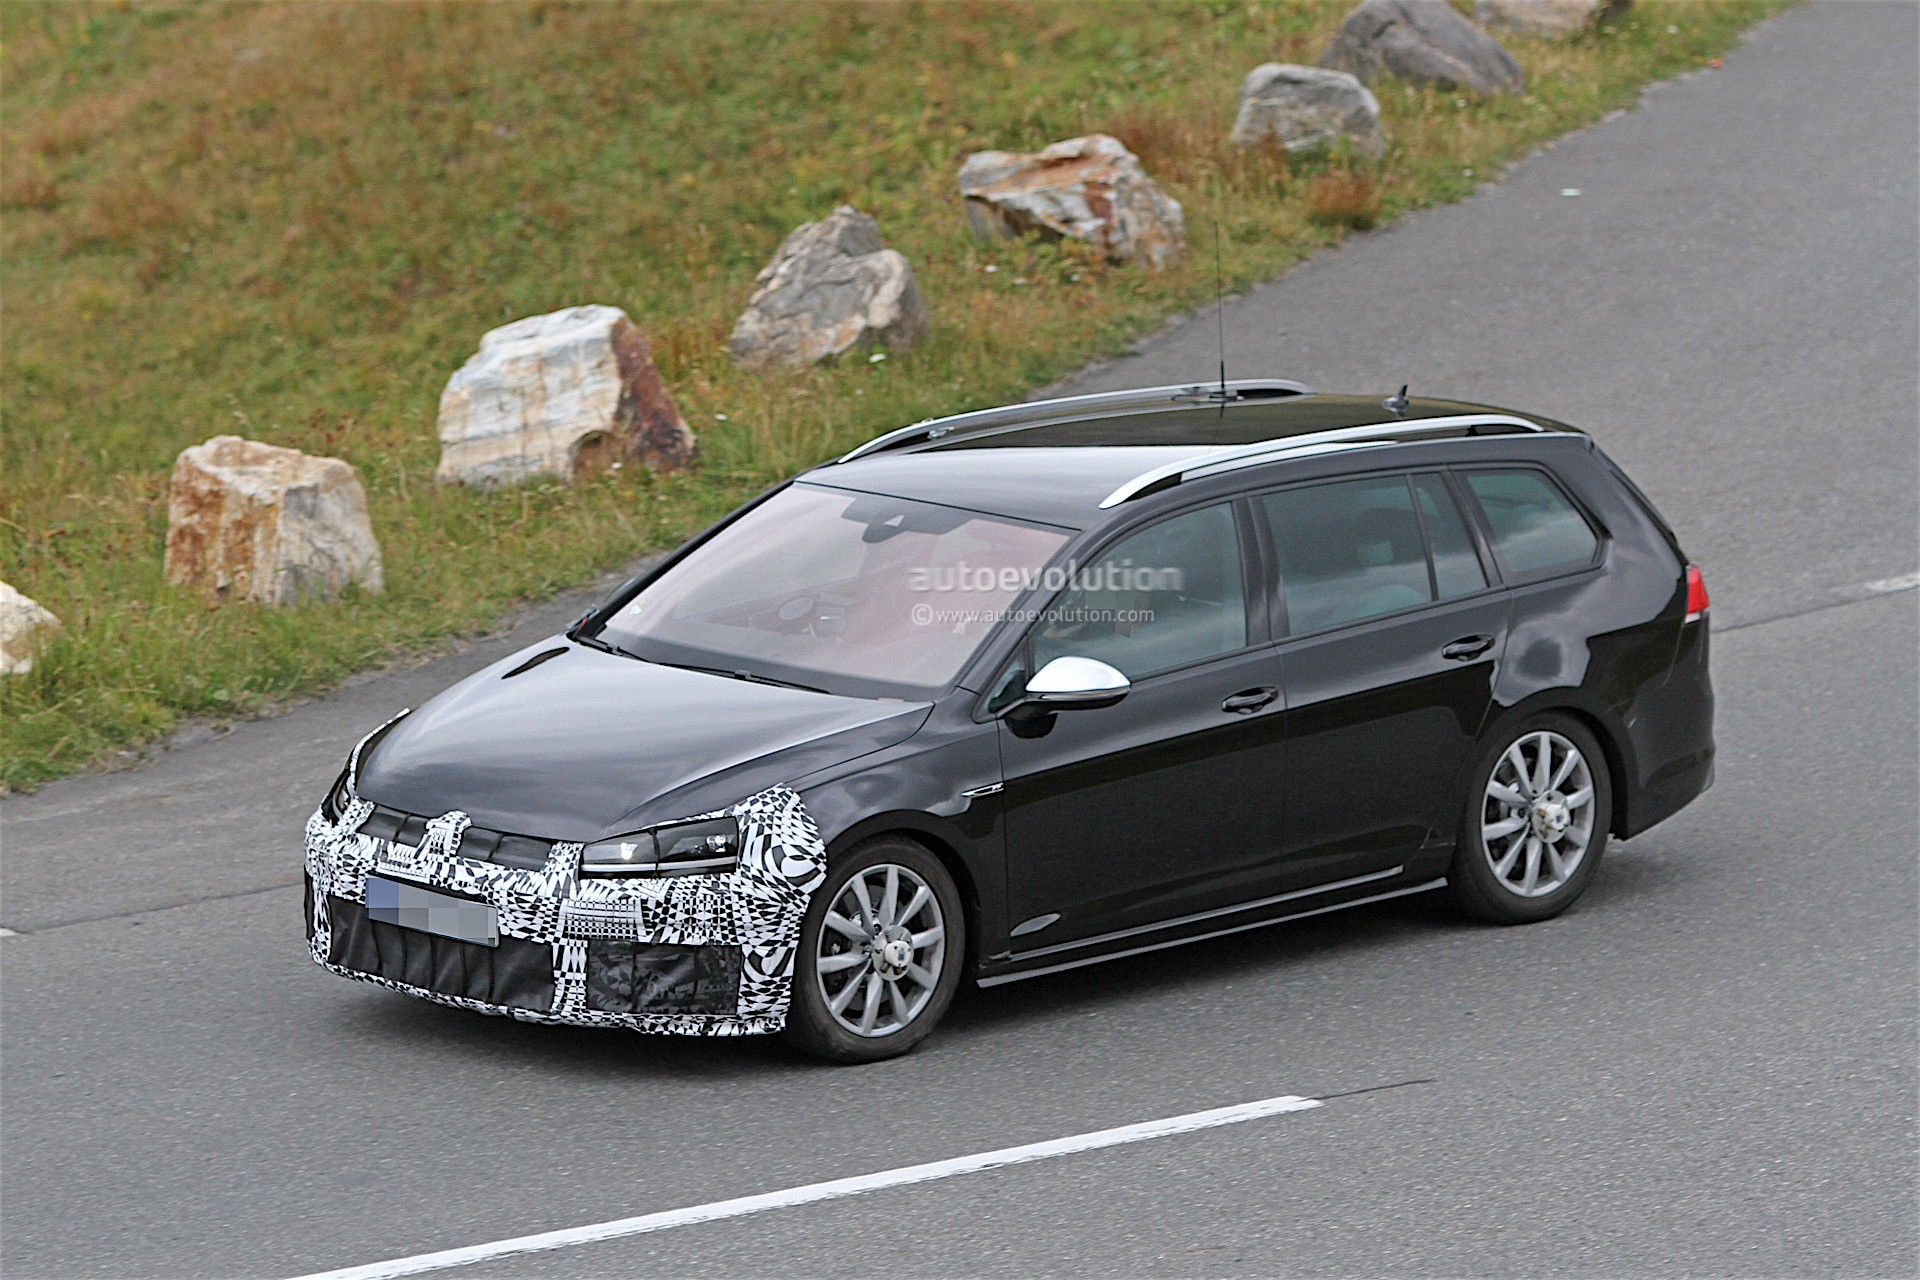 Volkswagen Golf 8 Coming in 2017, Will Be Based on MQB